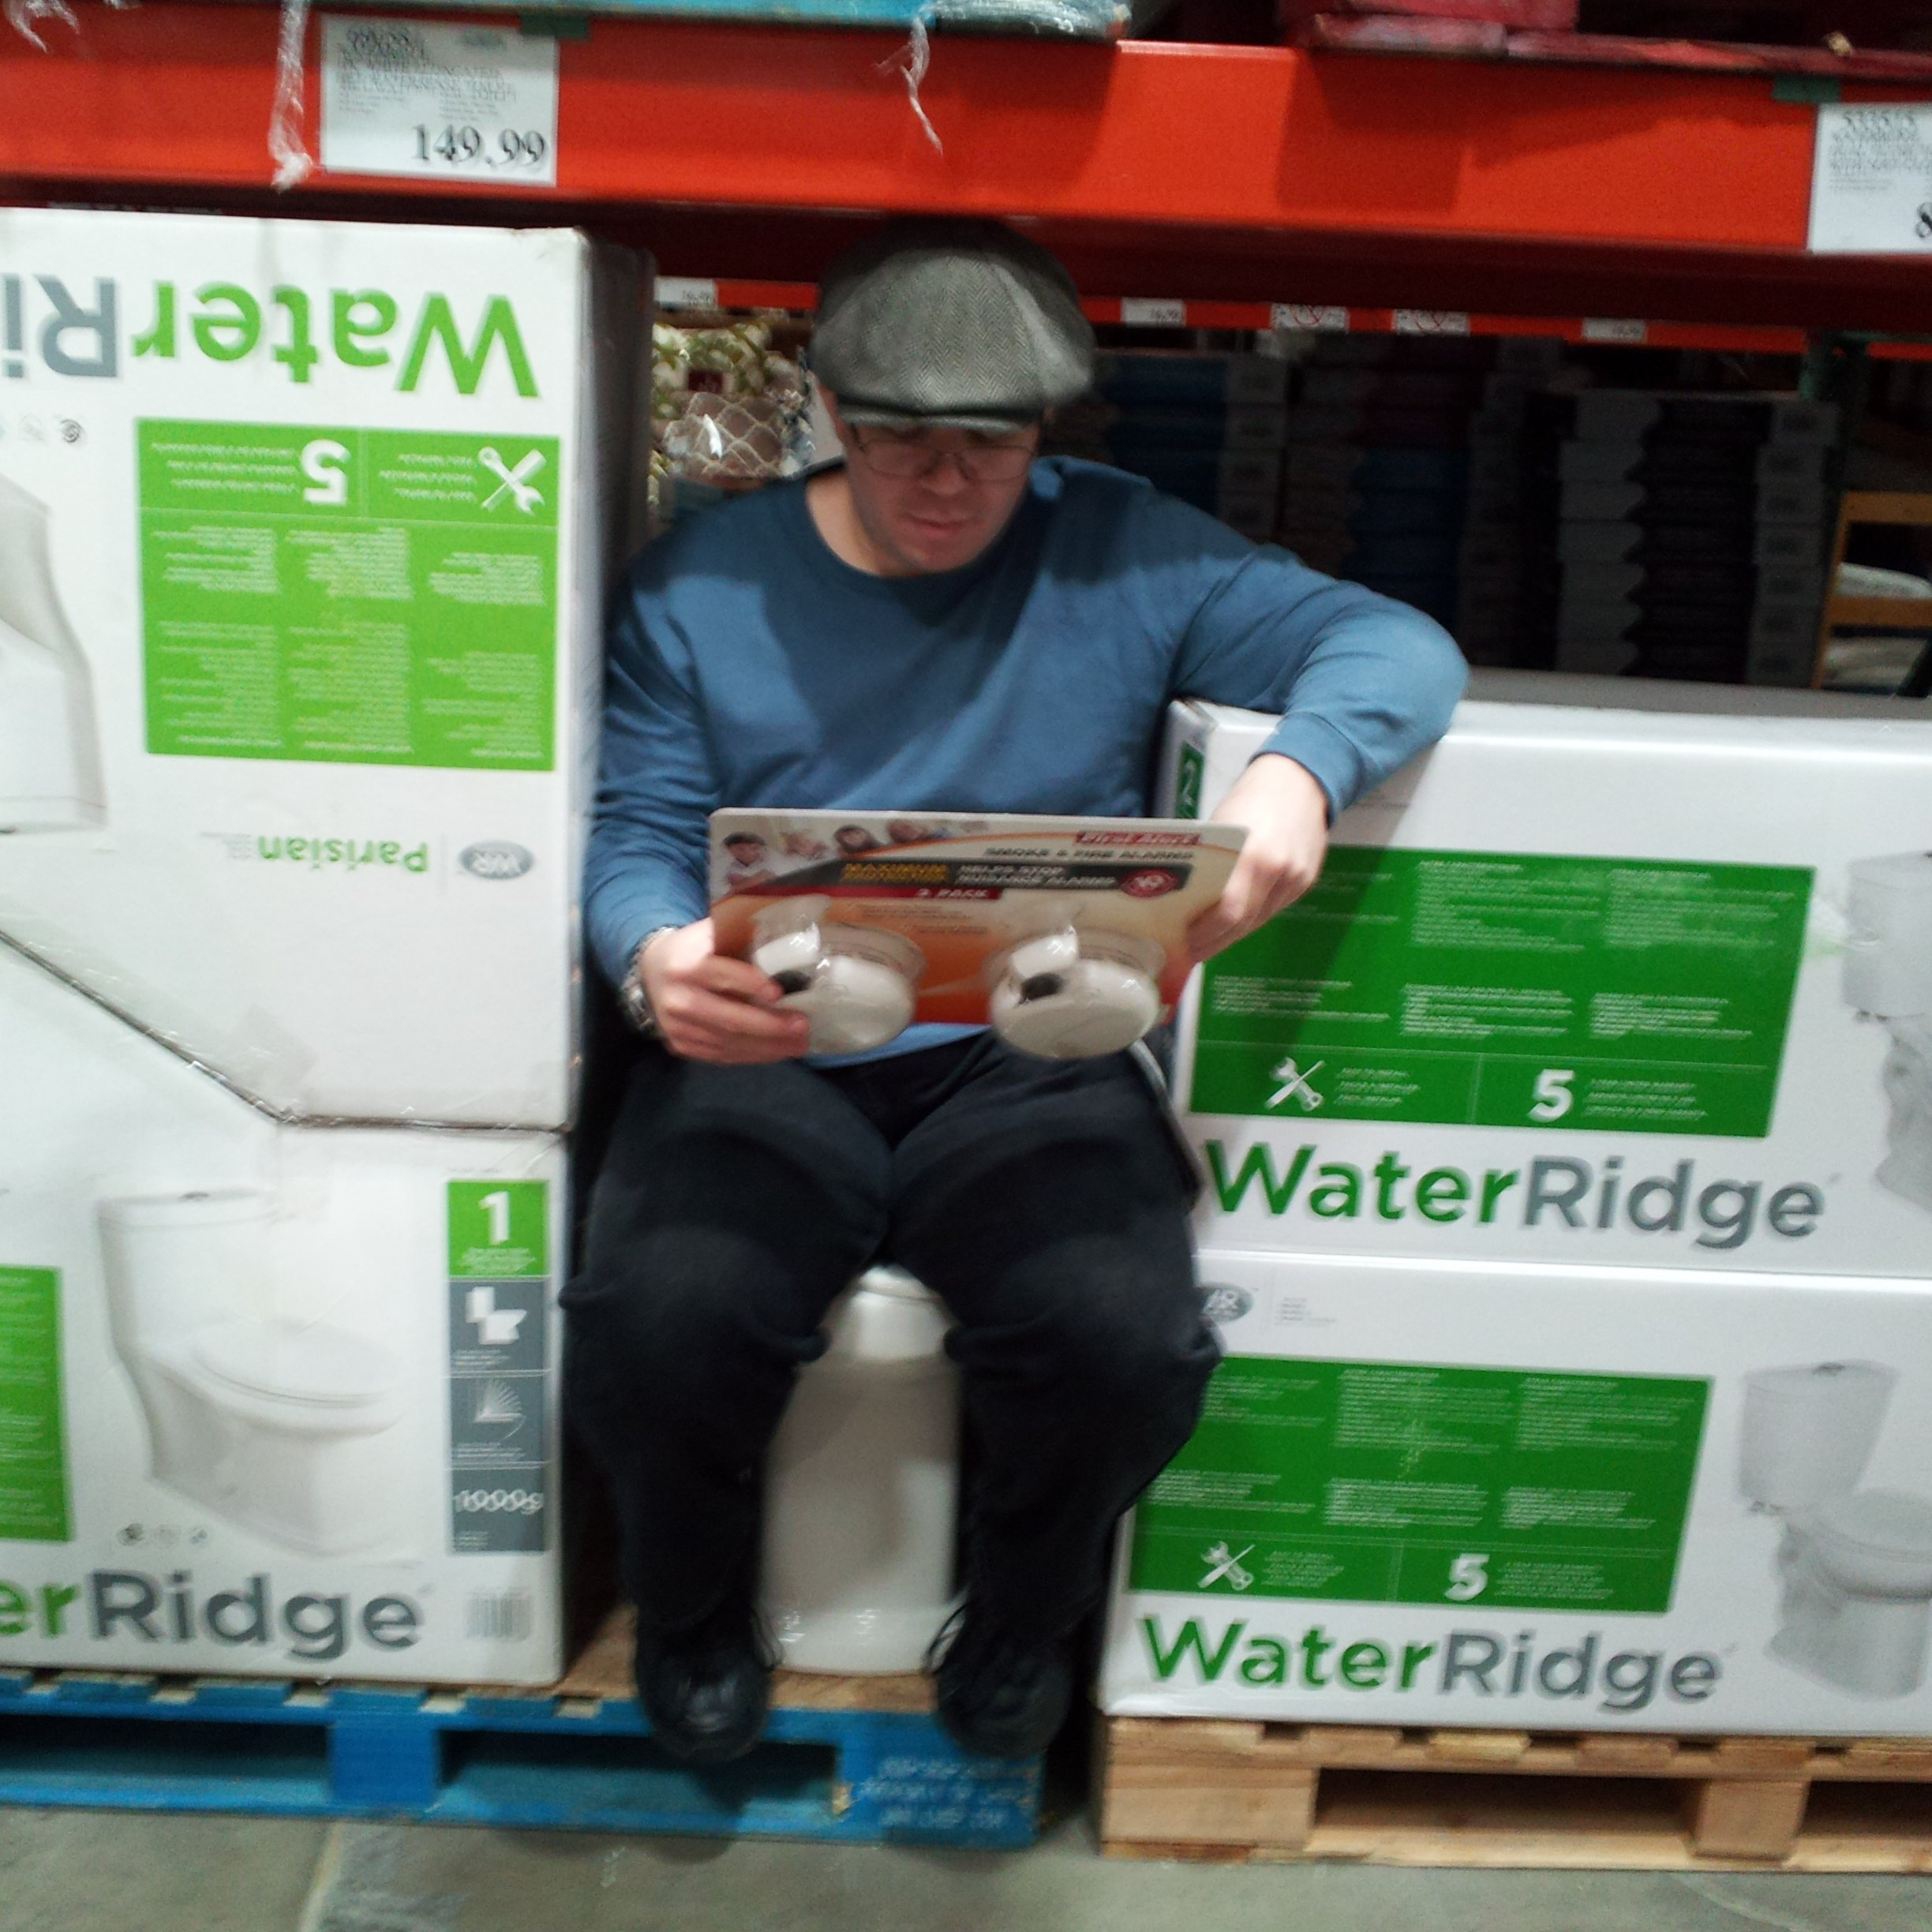 Fancy Who Already Knew That Costco S Schumin Web I Can Now Add To My Water Ridge Toilet Parts Water Ridge Toilet Manual Show houzz-03 Water Ridge Toilet